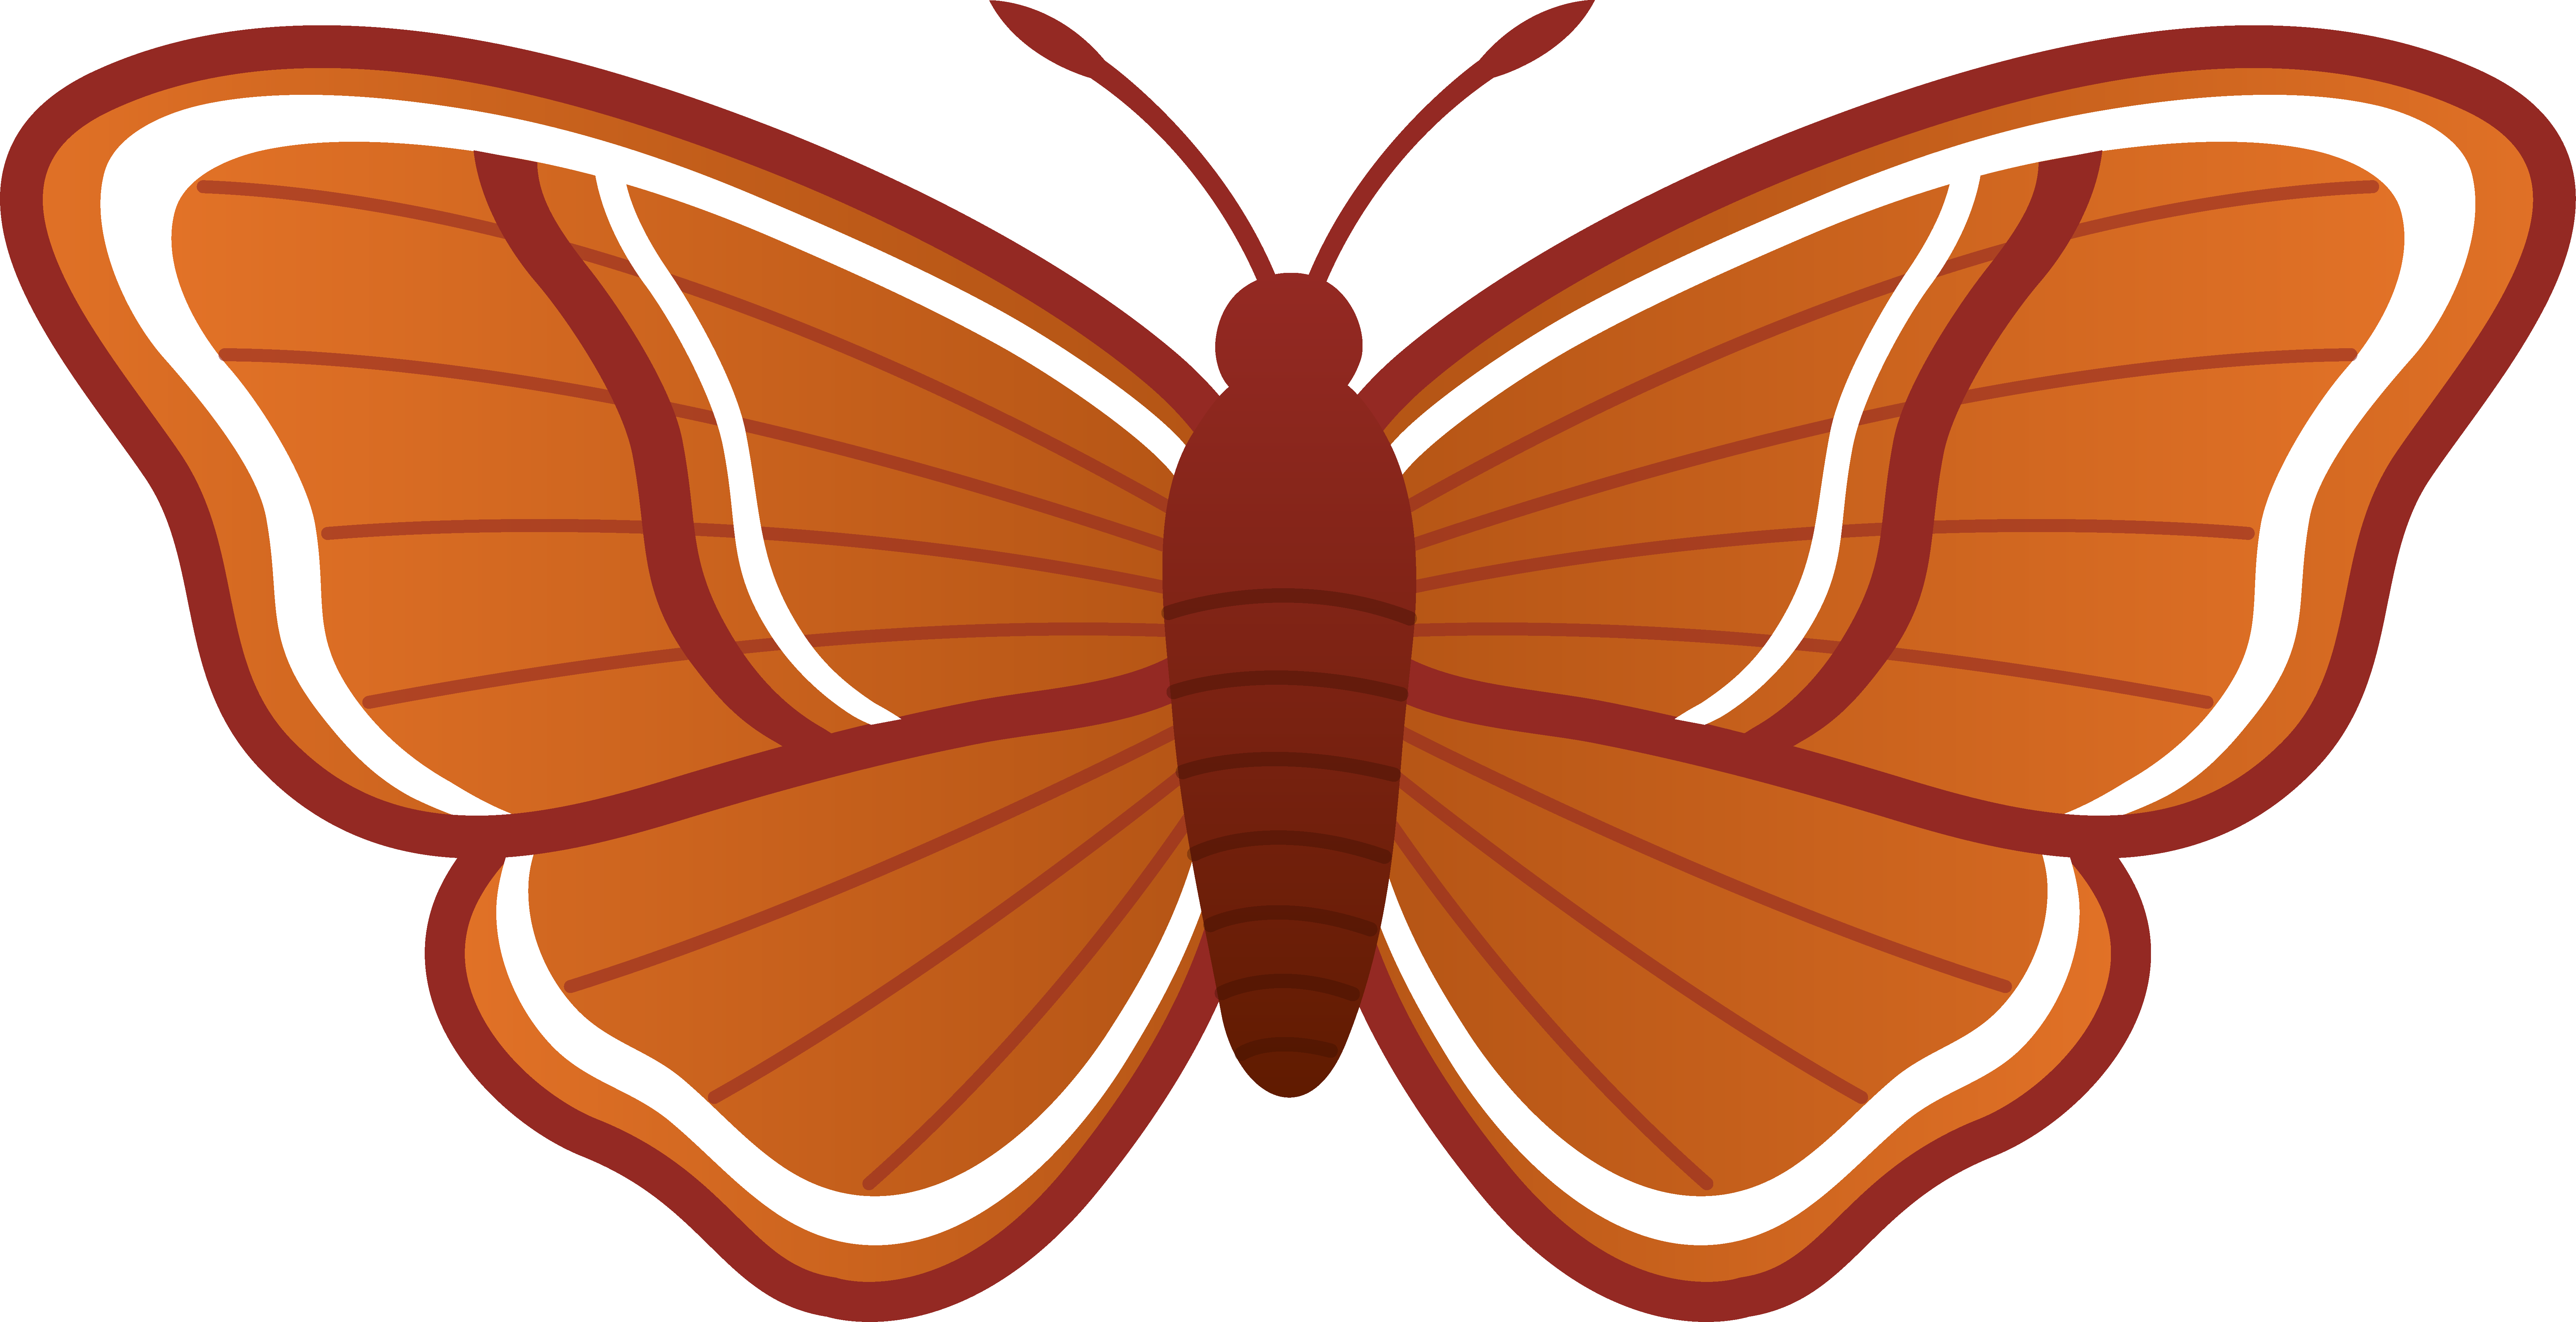 svg royalty free library Moth clipart realistic. Panda free images mothclipart.